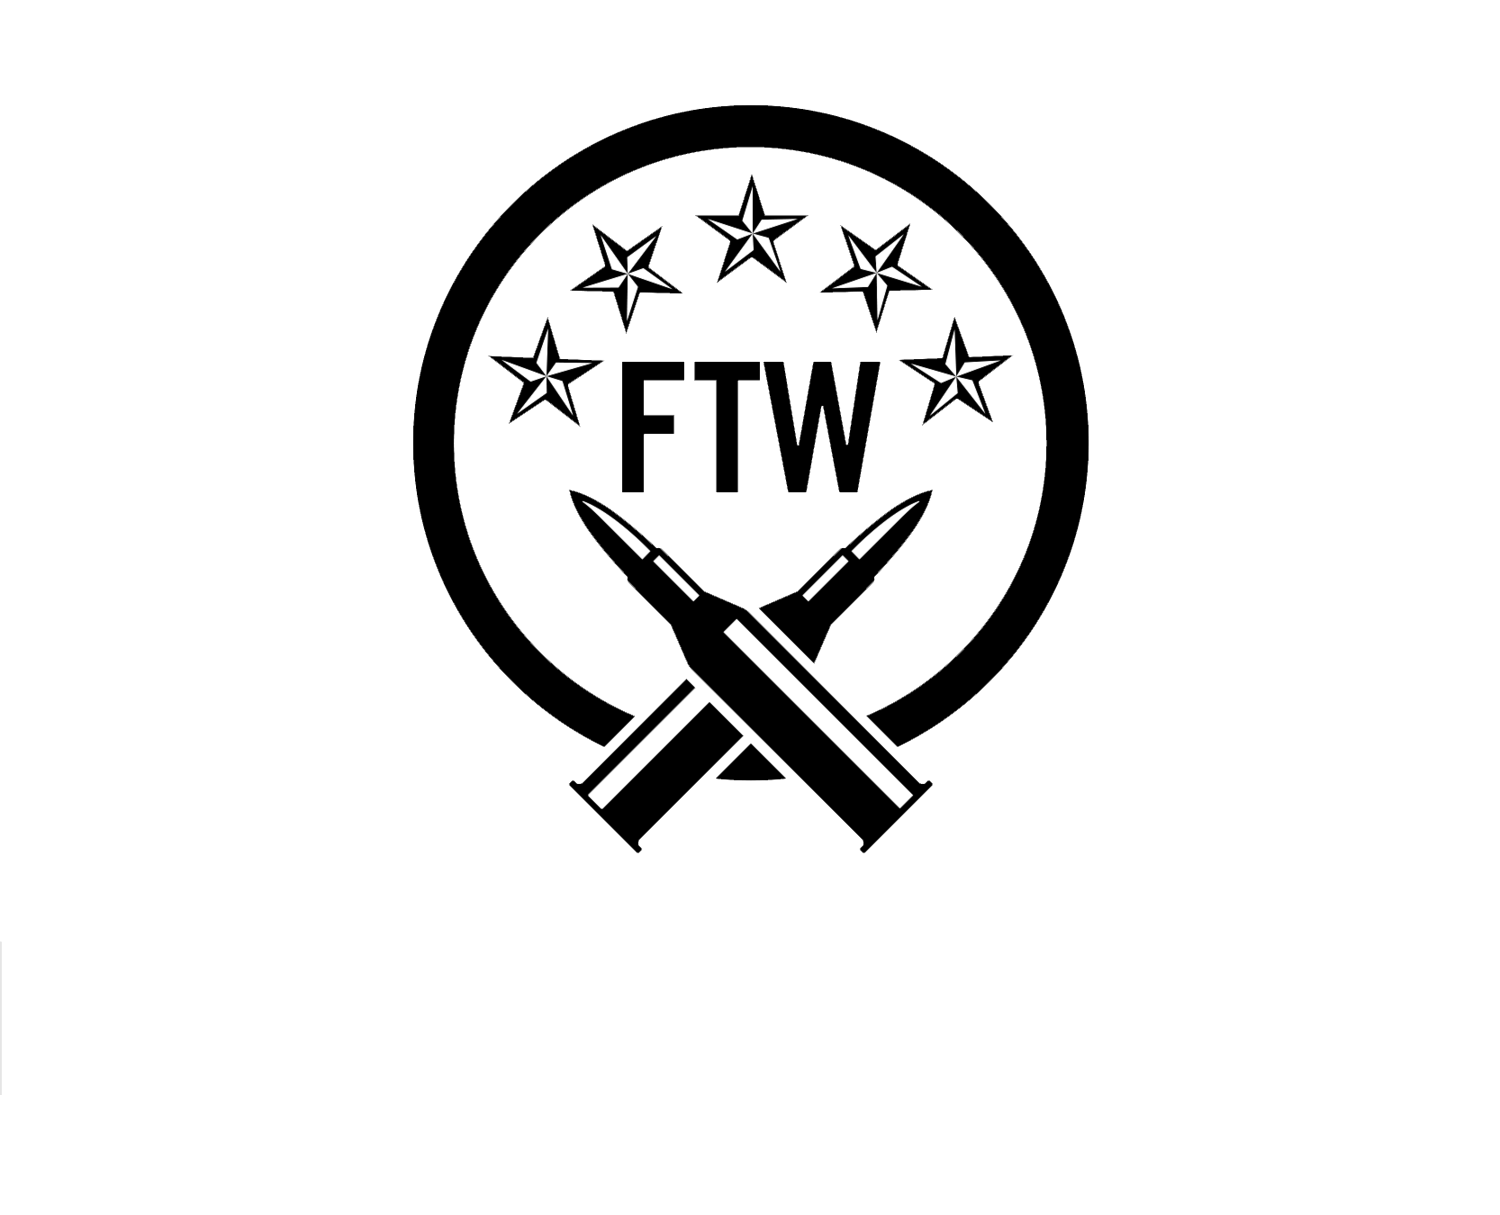 FIRE TEAM WHISKEY